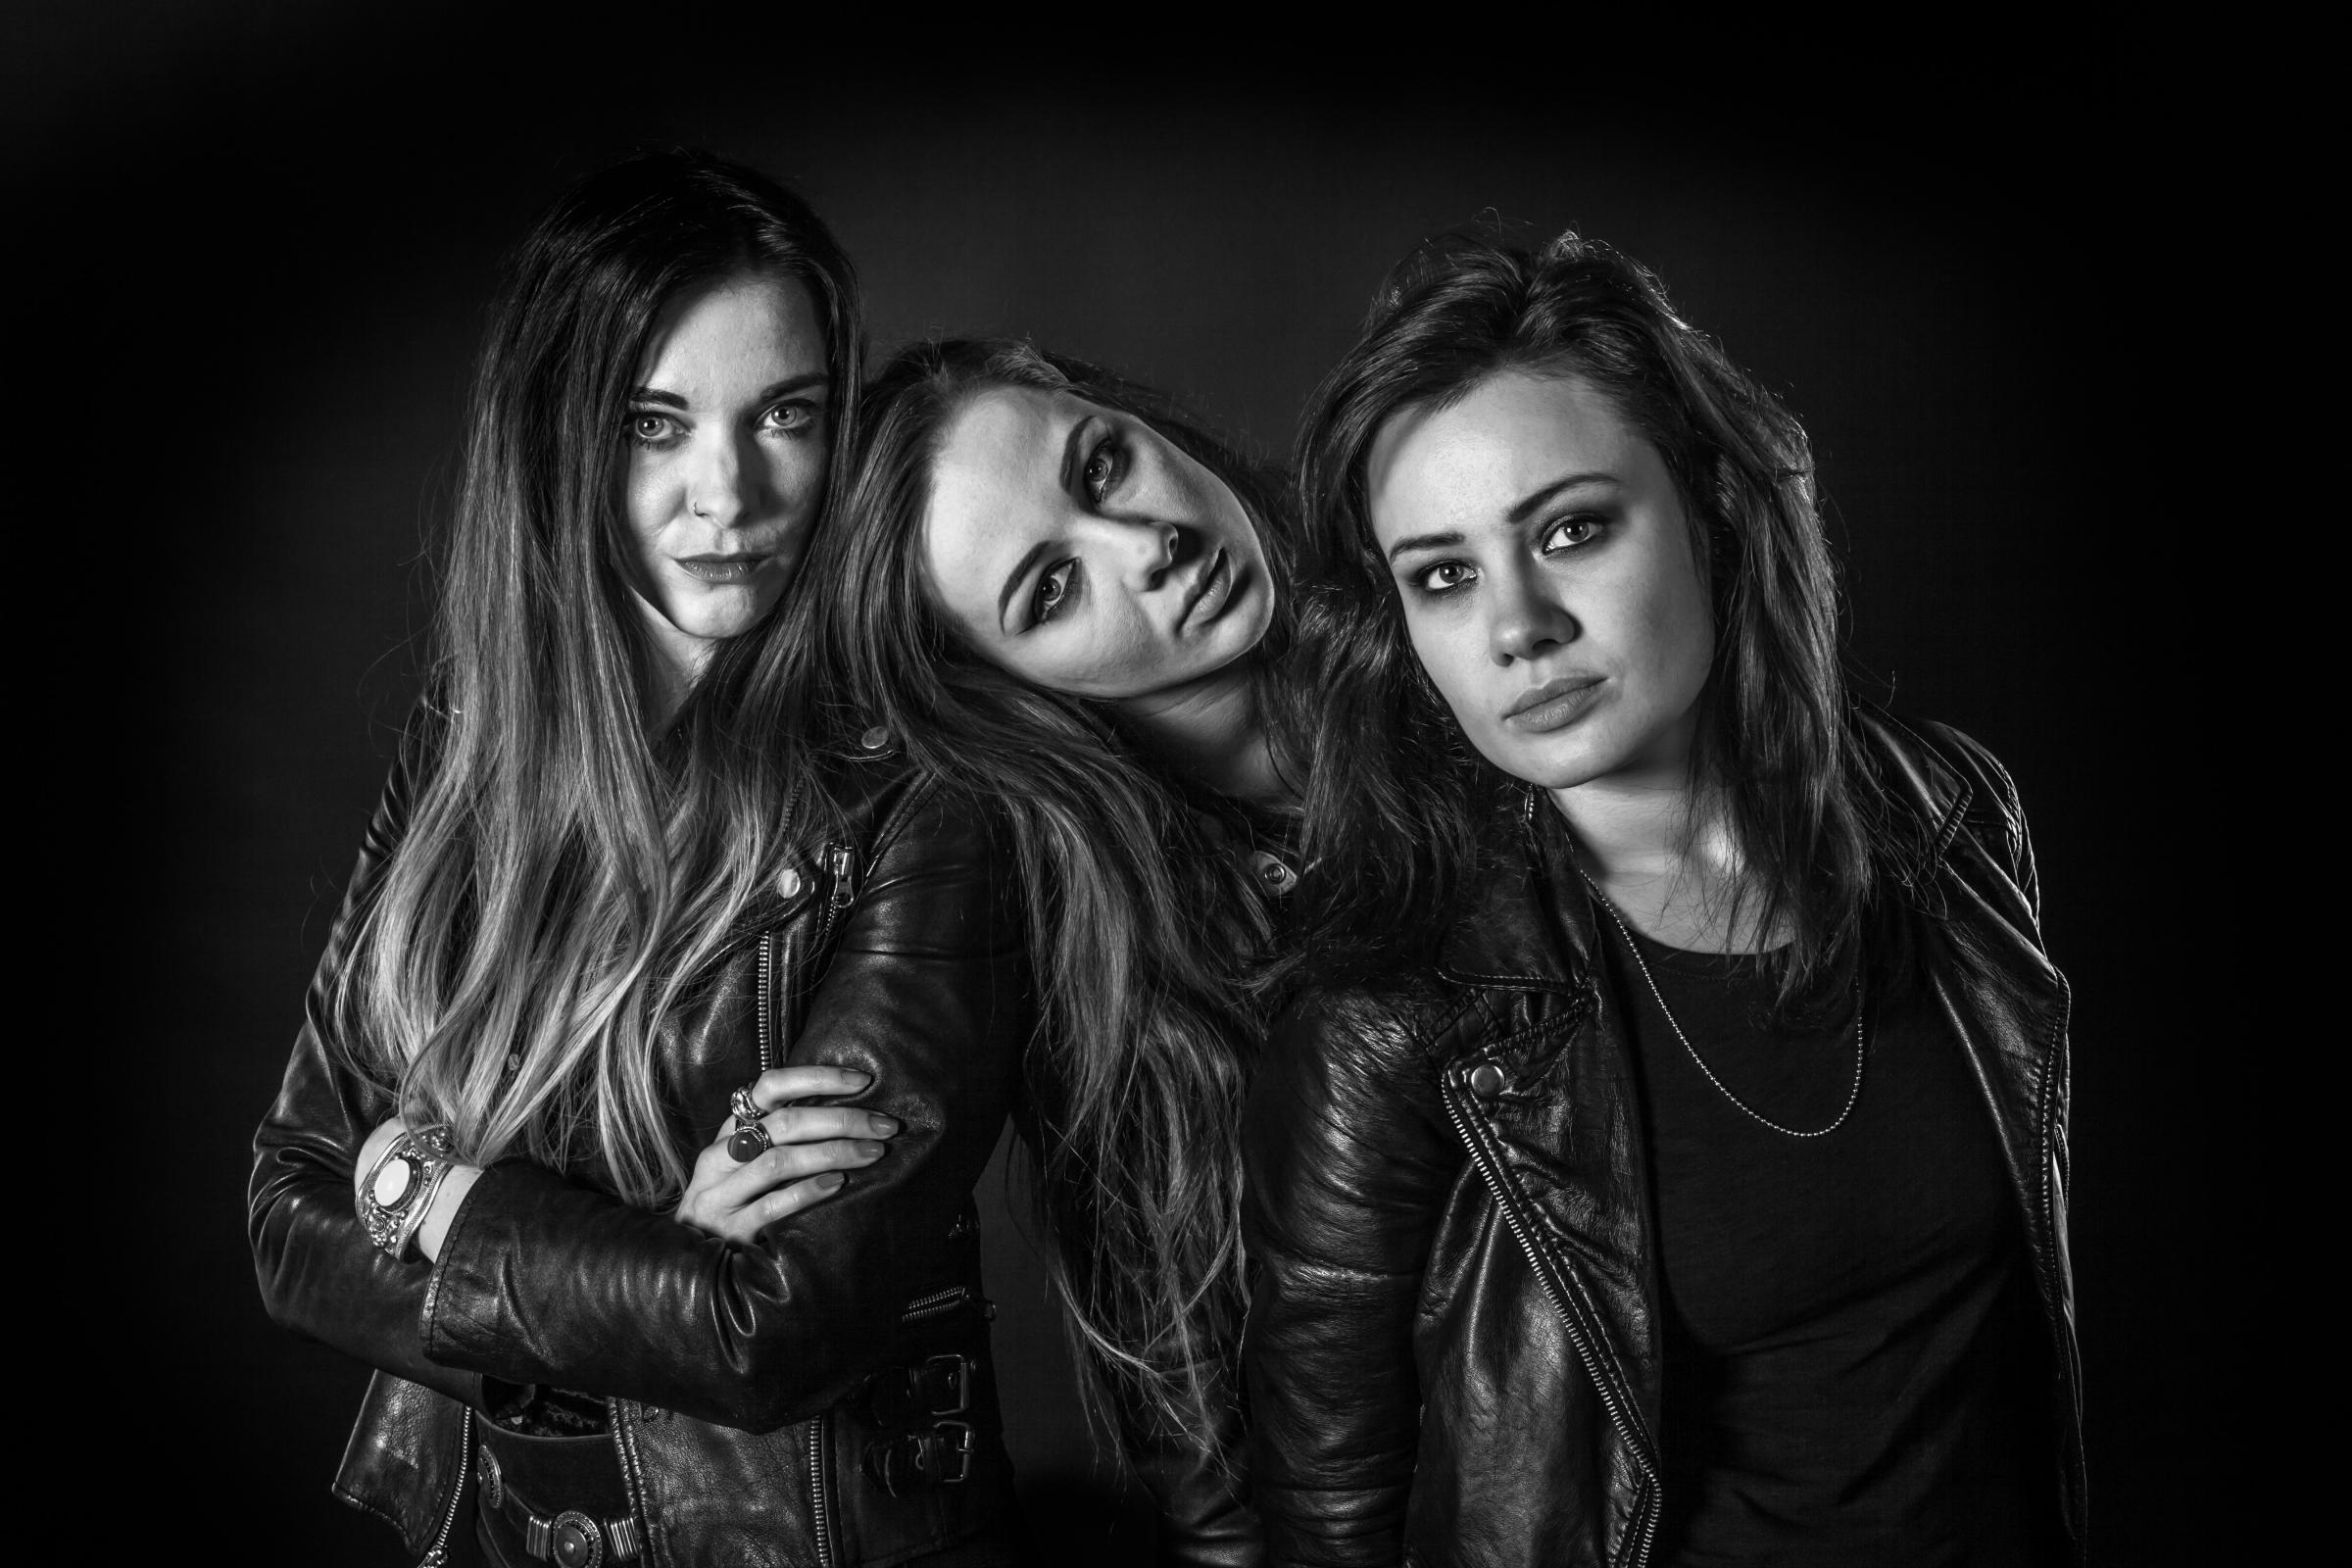 The Amorettes will play at the The Octagon Live in Keighley